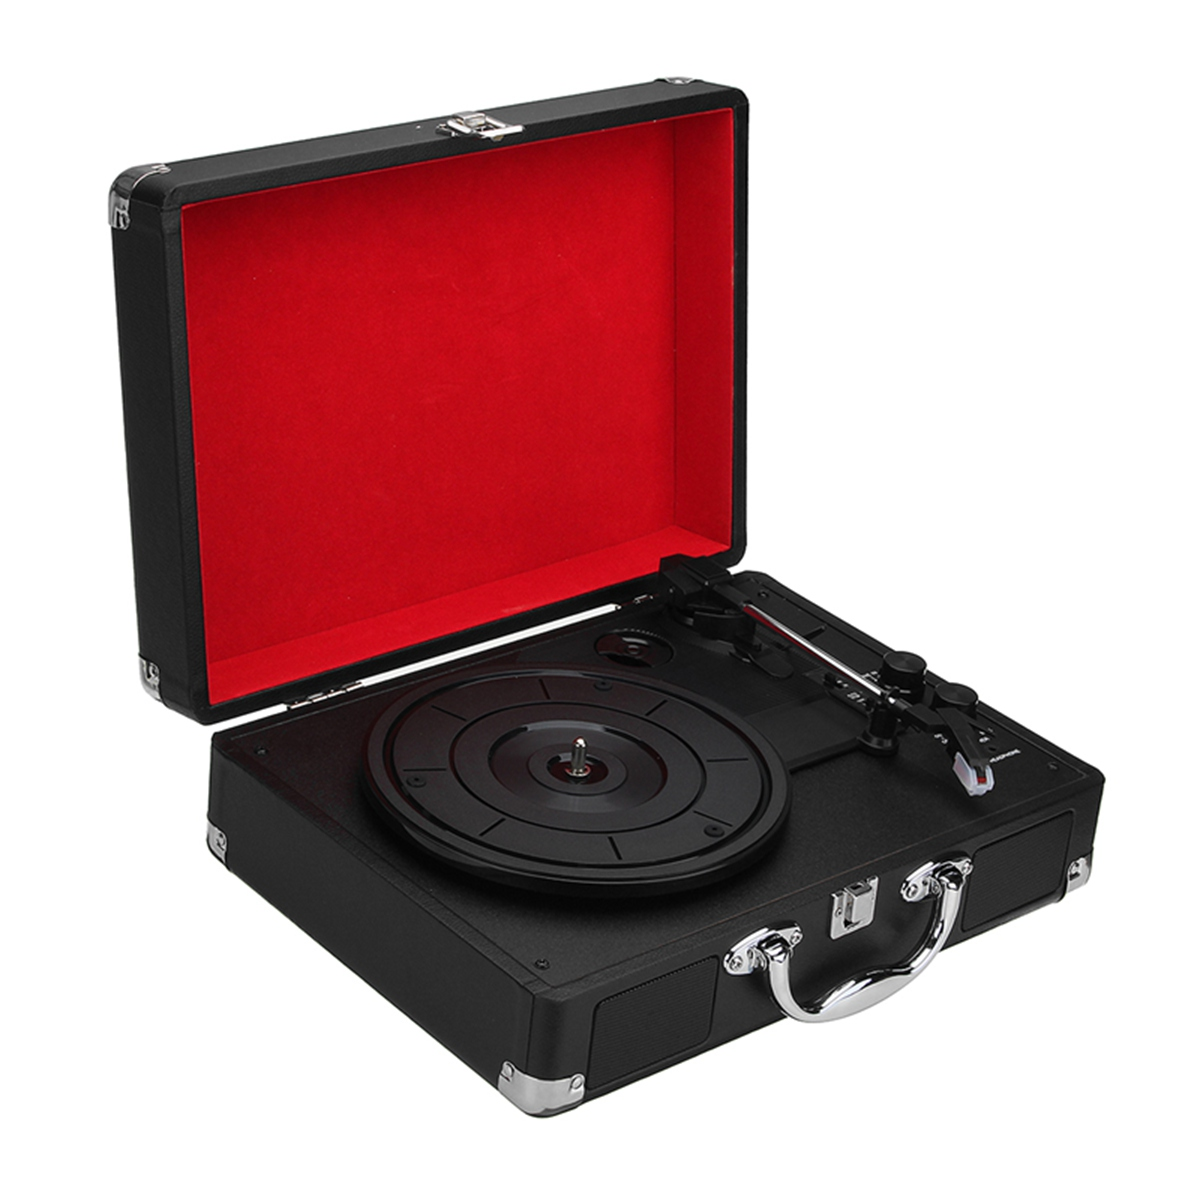 Tragbares Audio & Video in Line-out 100-240 V Intelligent Clcu 33/45/78 Rpm Bluetooth Tragbare Koffer Plattenspieler Vinyl Lp Record Telefon Player 3-speed Aux